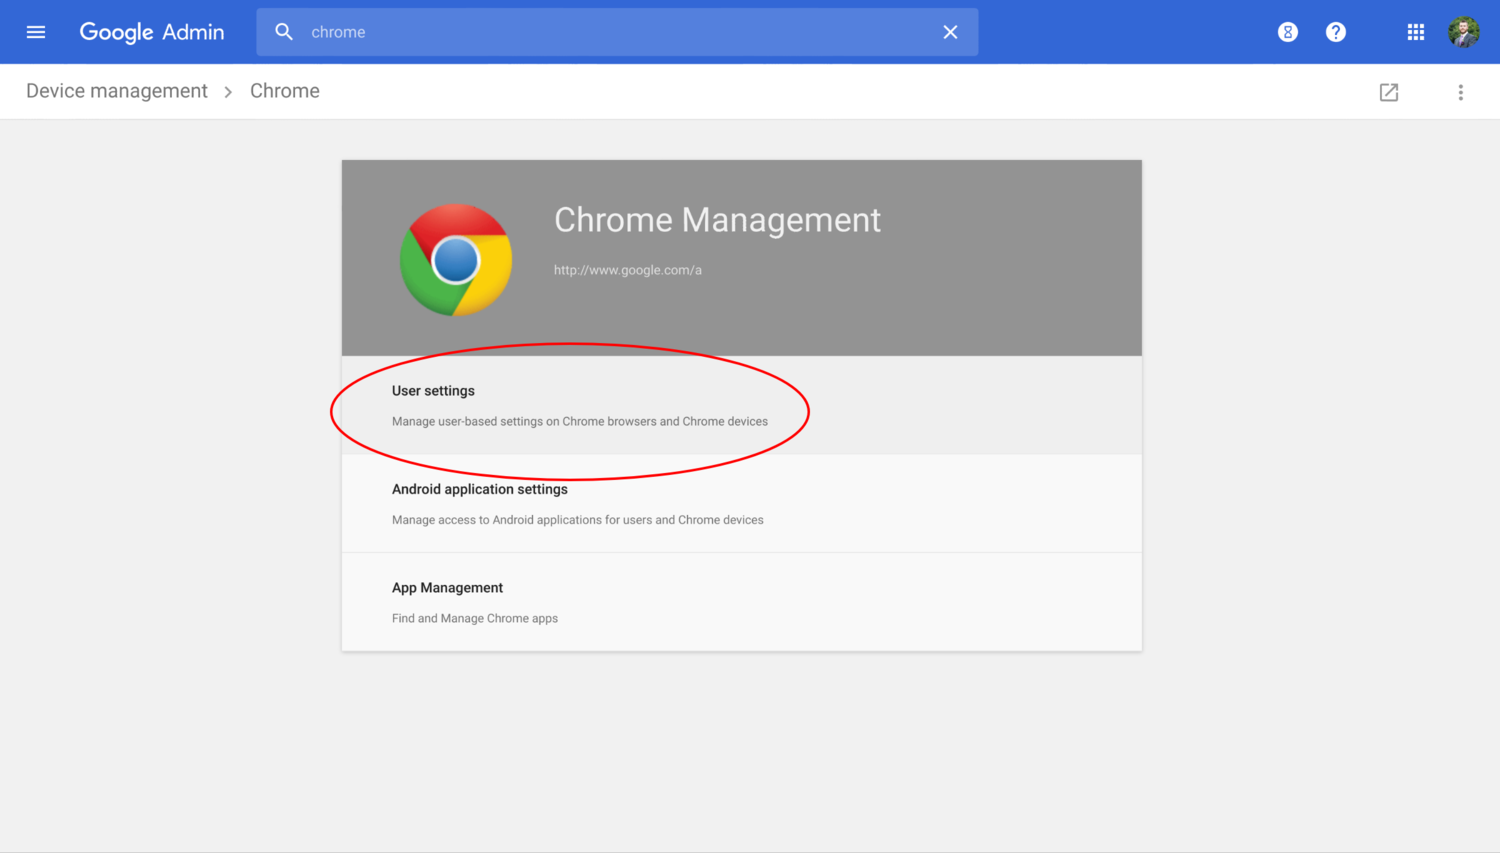 How to enable Google Play Store for G Suite users on Chromebook